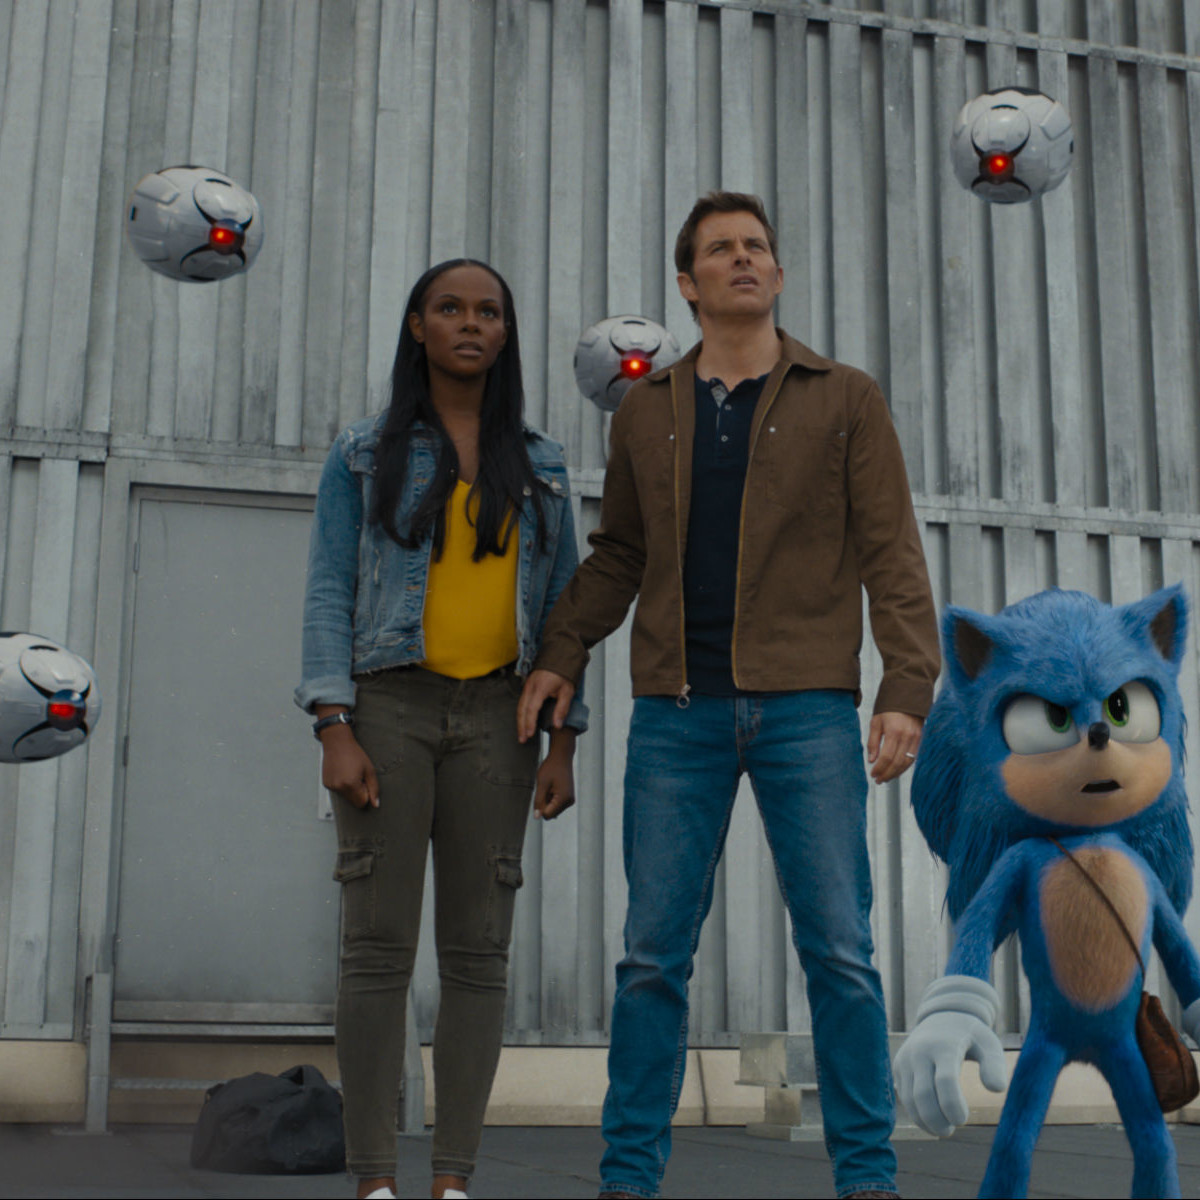 Tika Sumpter, James Marsden, and Sonic in Sonic the Hedgehog